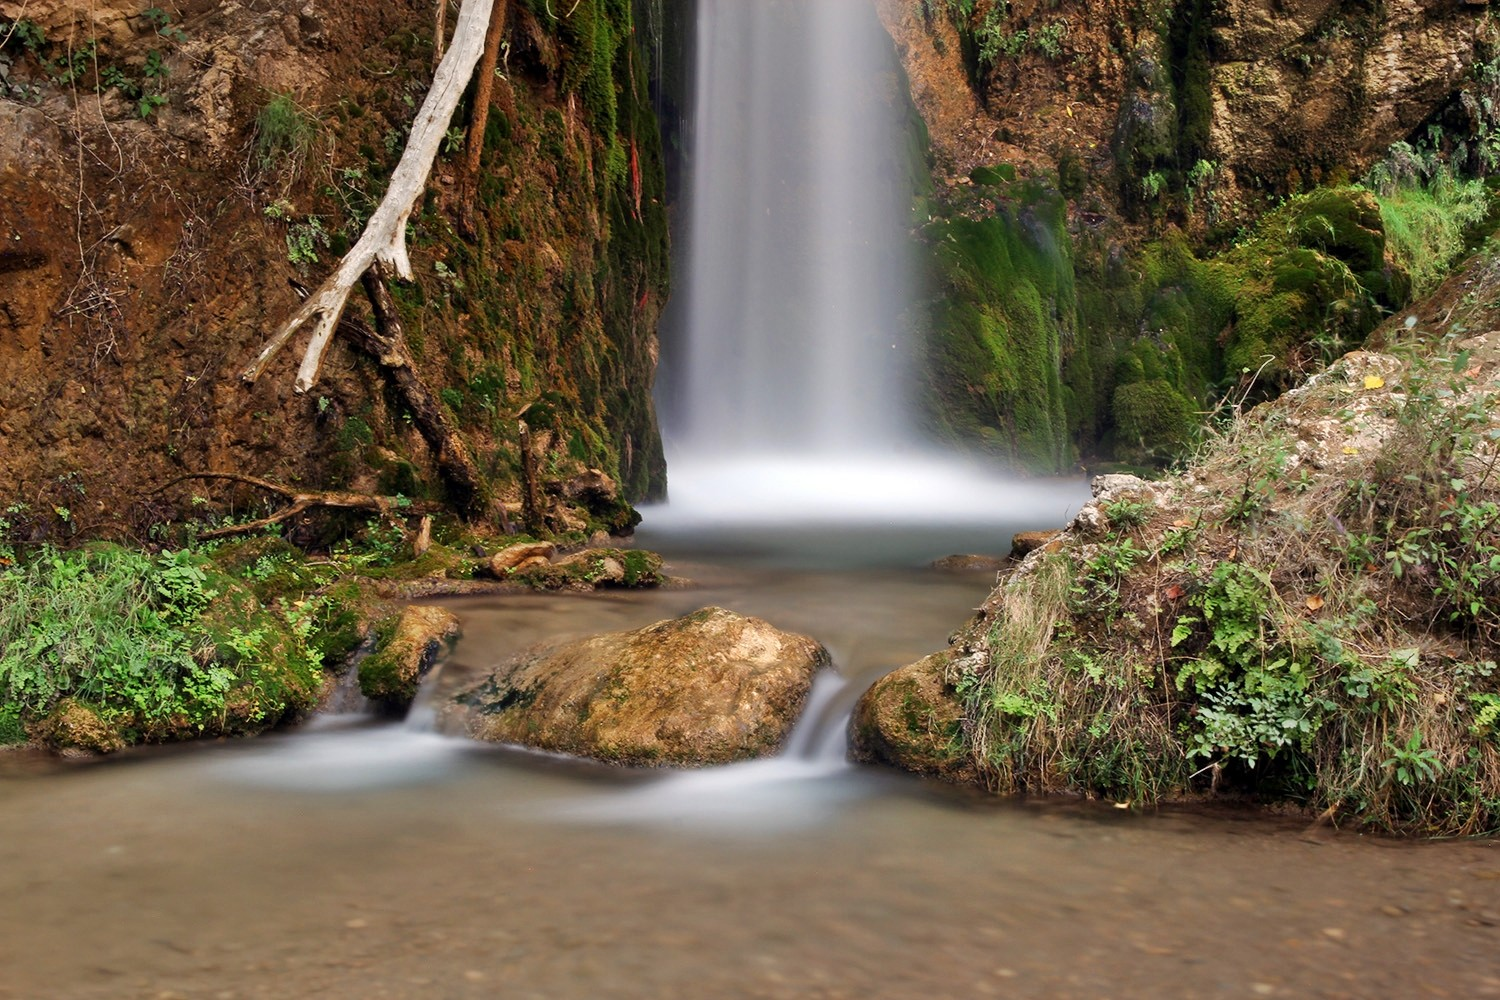 A Waterfall in Arroyo de la Alcaza (Cónchar)